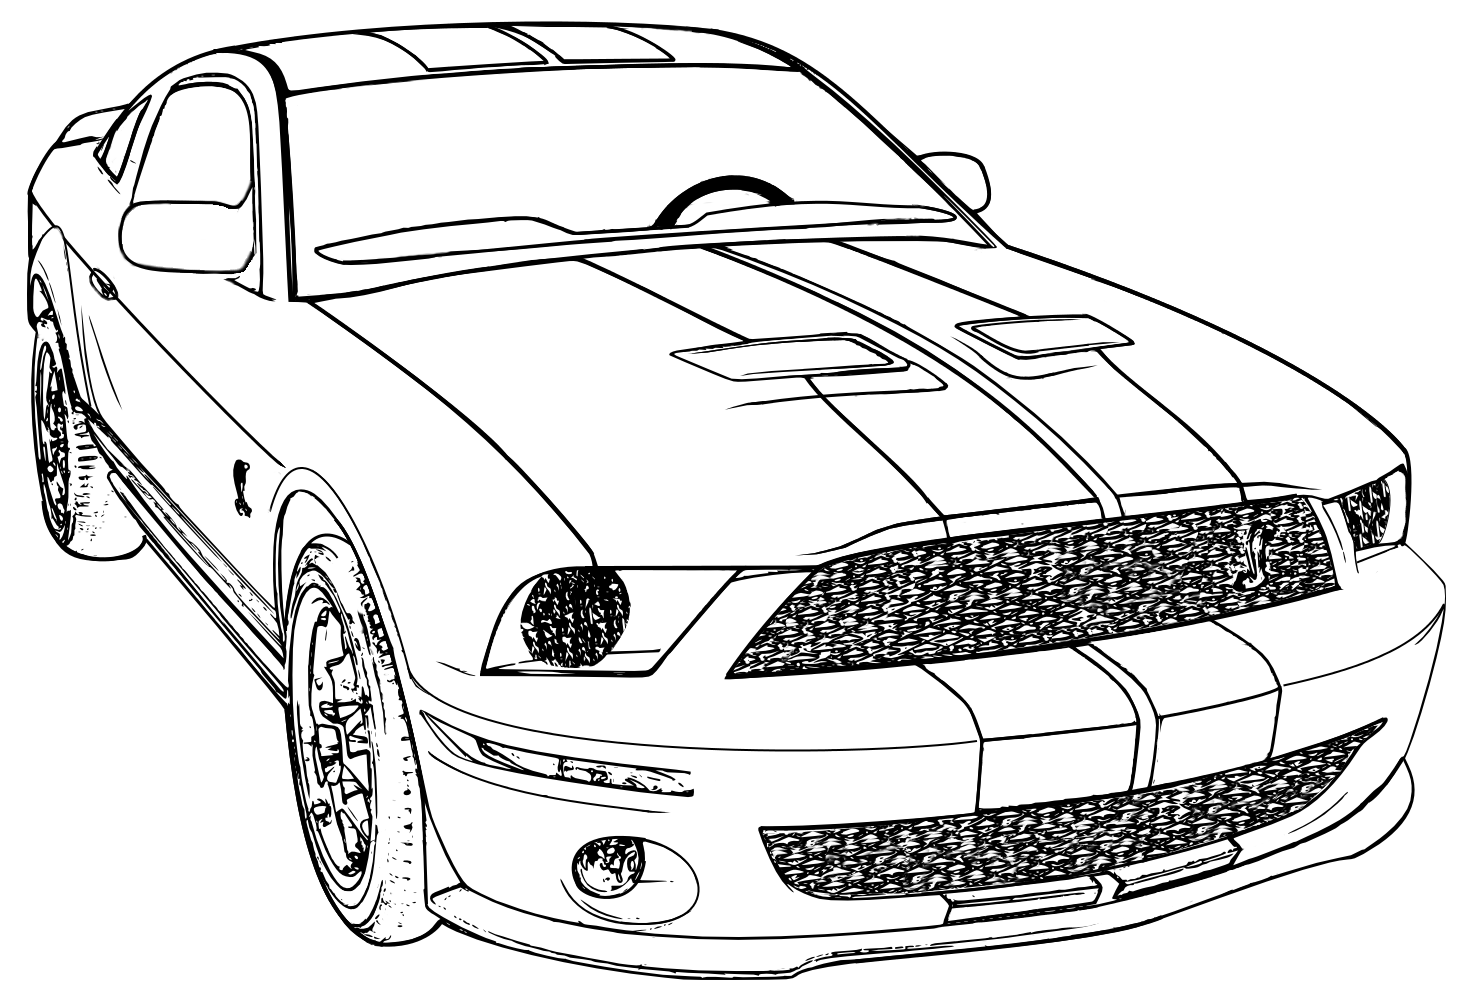 Ausmalbilder Auto Bmw : Printable Mustang Car Car Coloring Page Ford Mustang Birthday